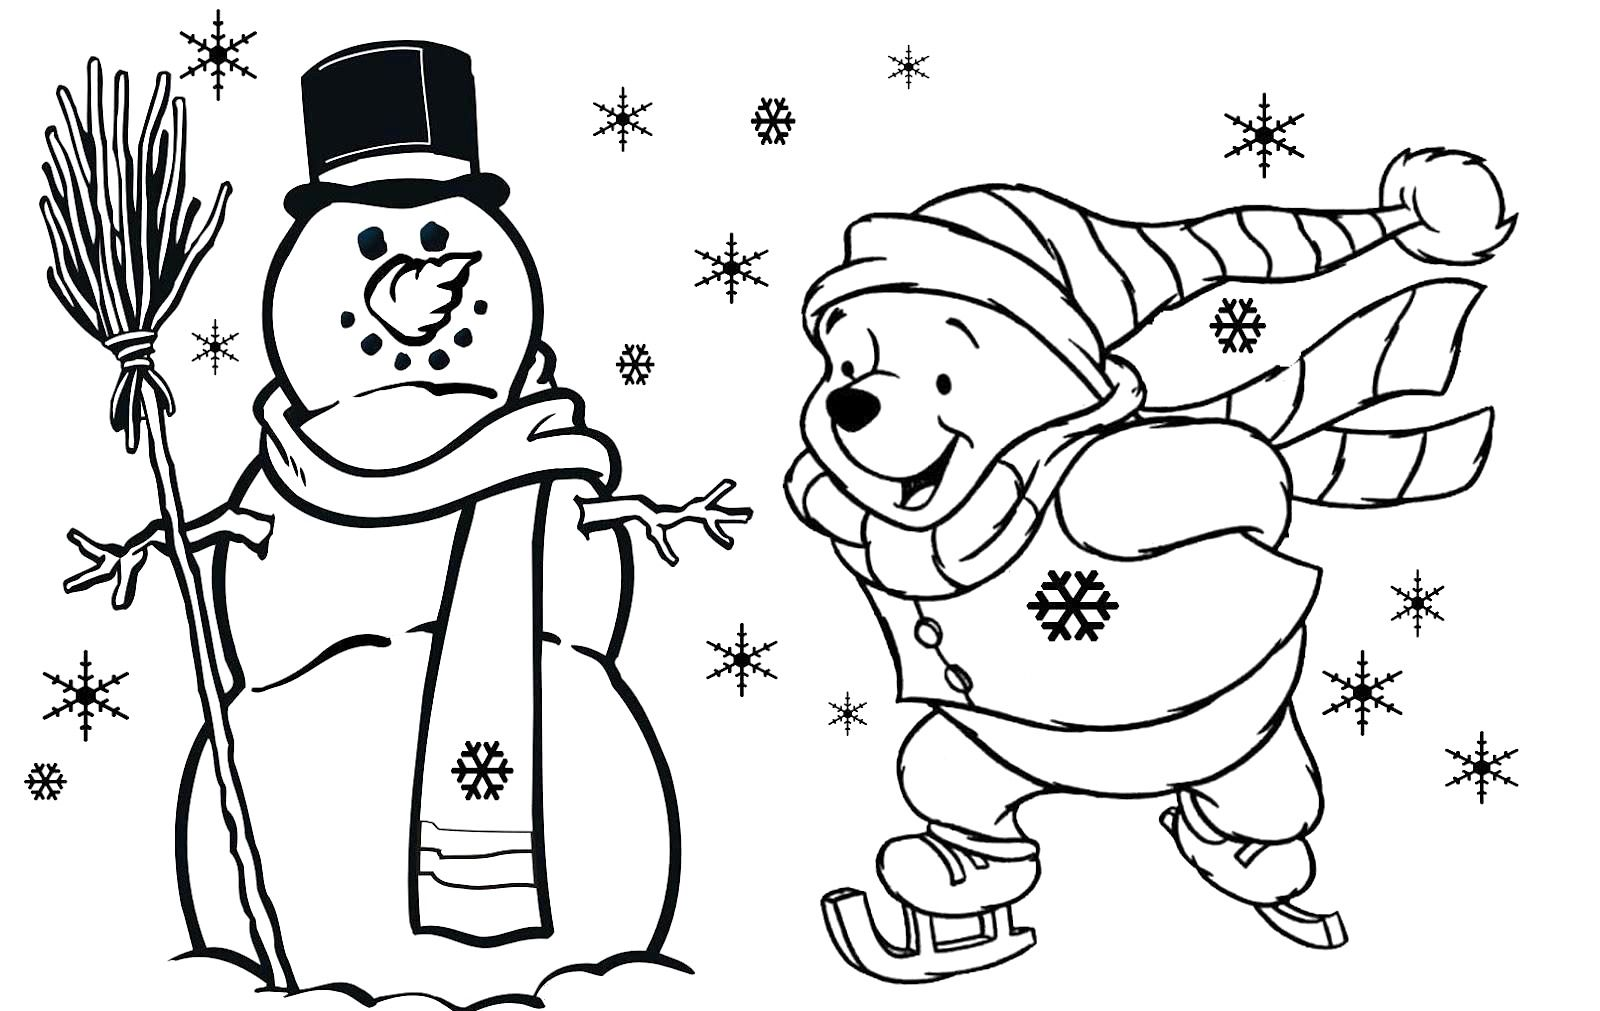 Free Printable Christmas Coloring Pages Kids 23581jpg On For 8 For Printable Christmas Coloring Pages Free Christmas Coloring Pages Disney Coloring Pages [ 1011 x 1600 Pixel ]